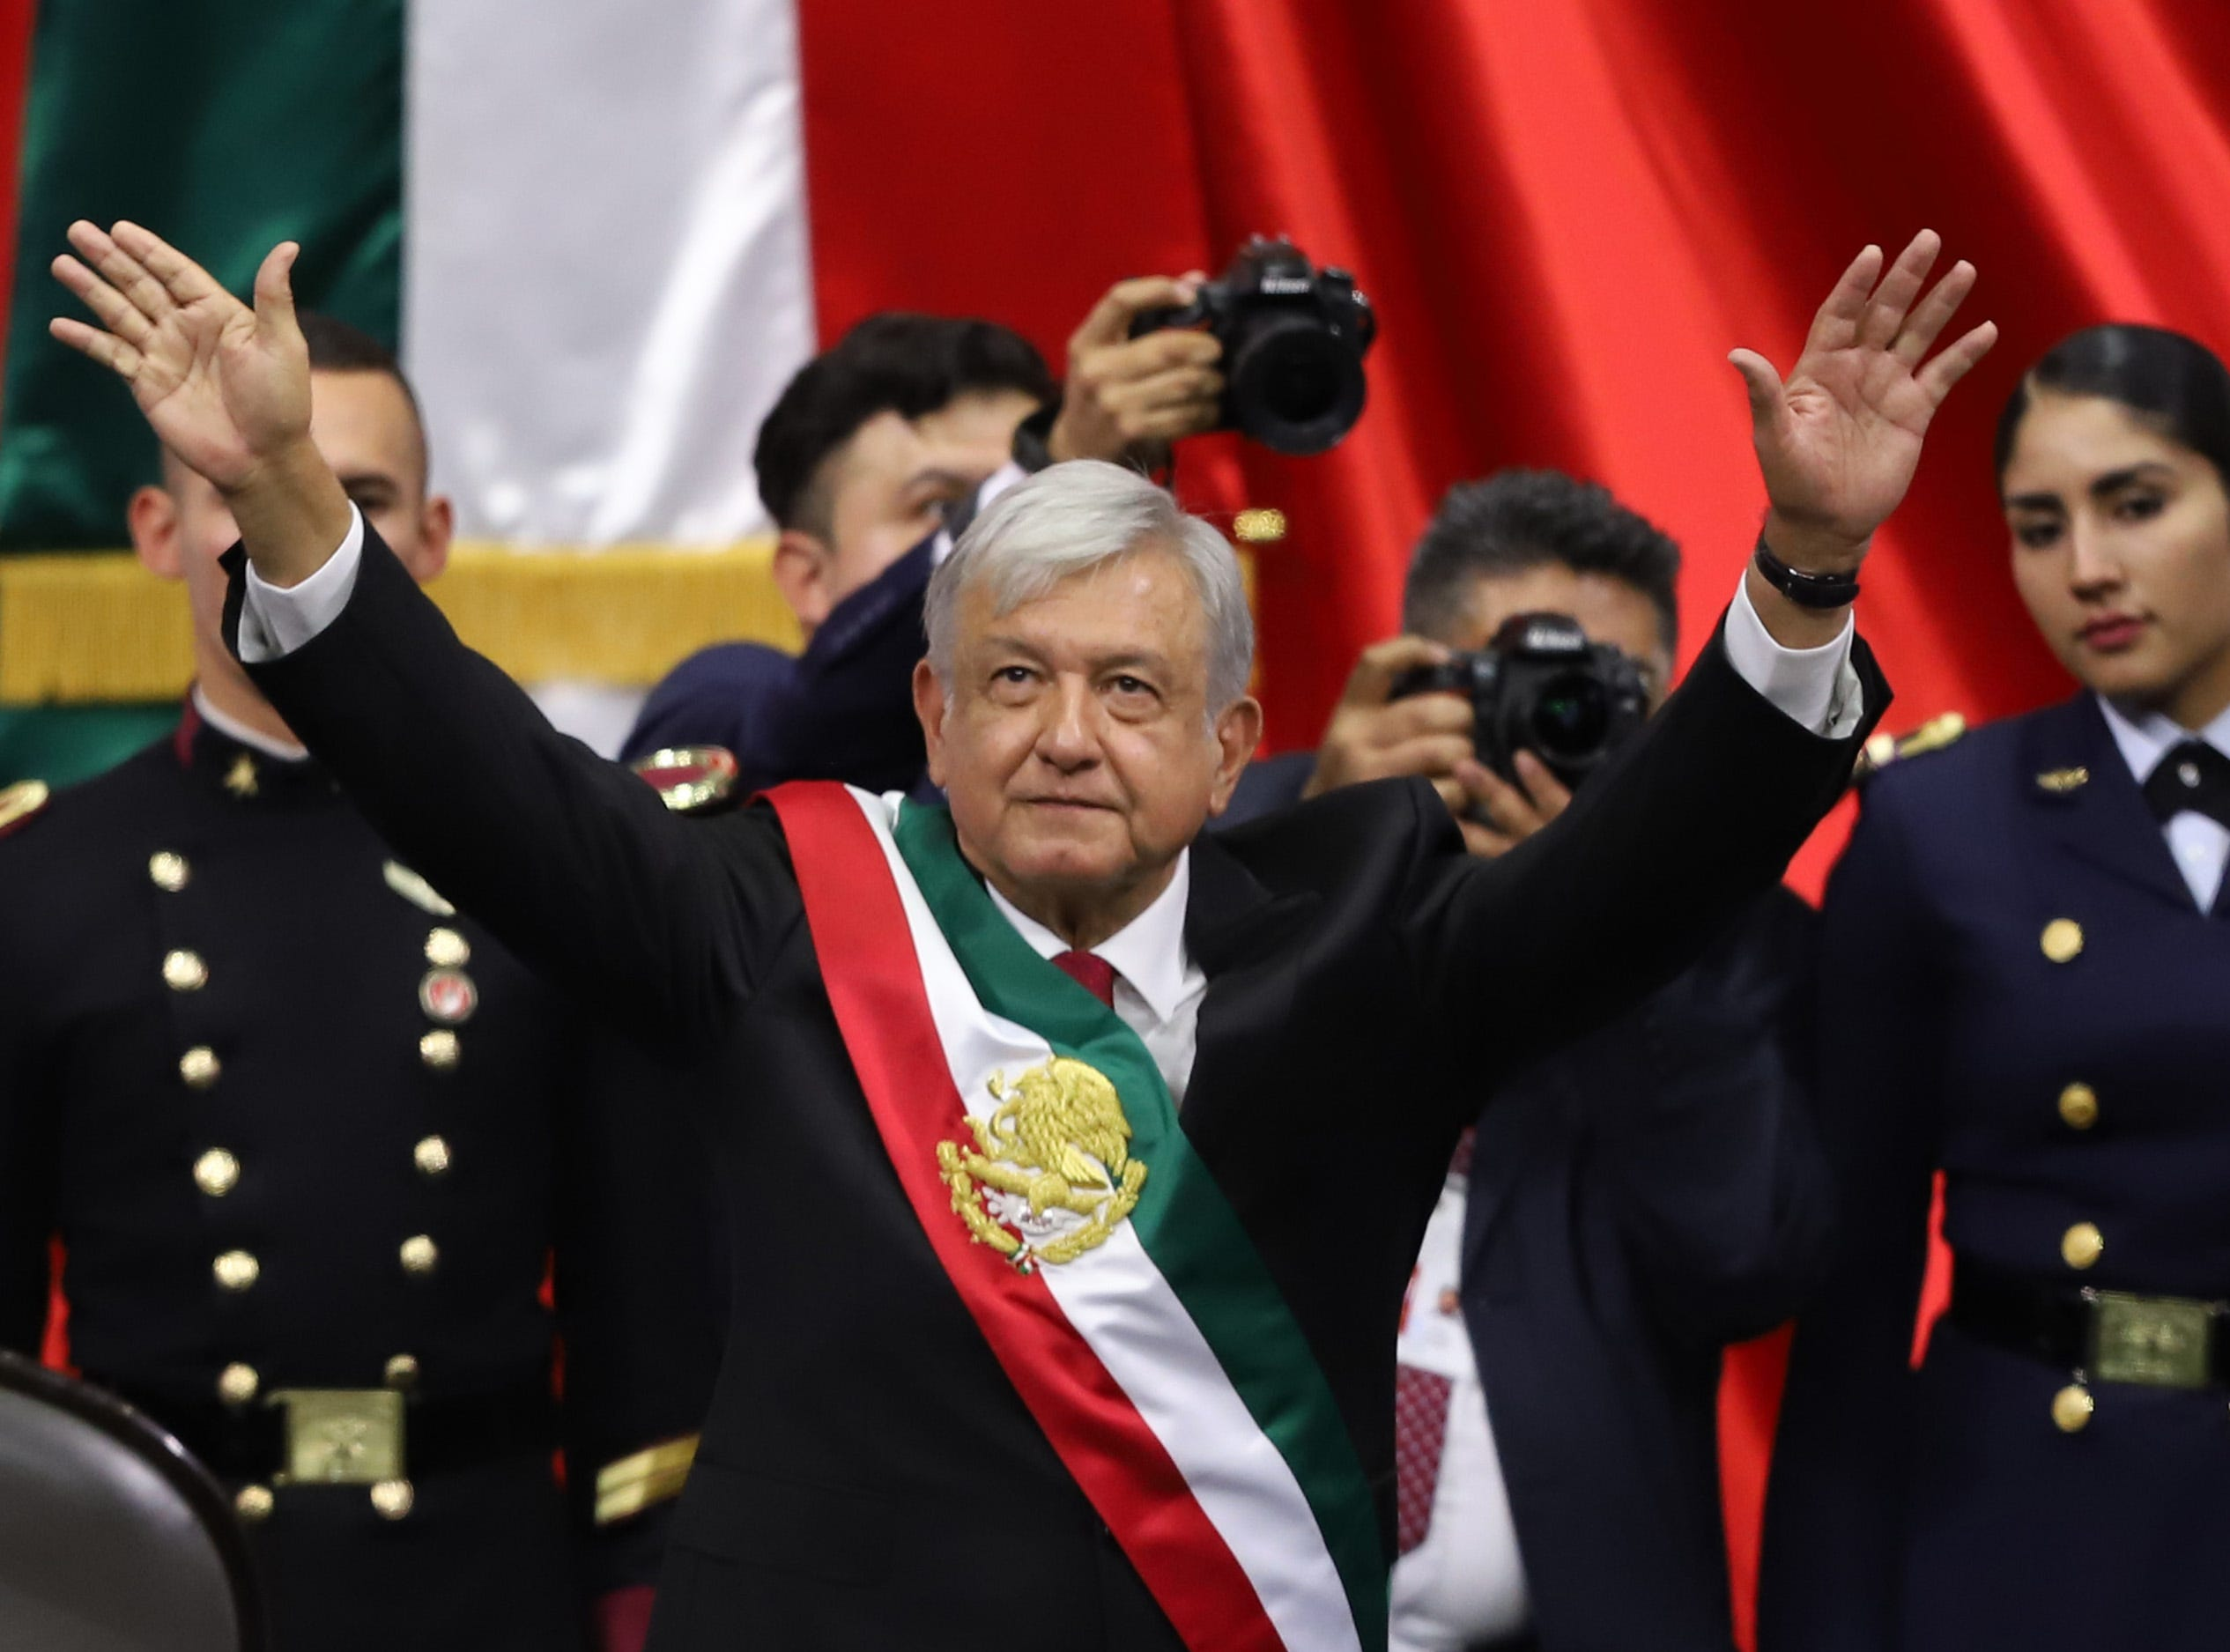 MEXICO CITY, MEXICO - DECEMBER 01: Newly appointed Mexican President Andres Manuel Lopez Obrador waves after the swearing-in ceremony during the events of the Presidential Investiture as part of the 65th Mexico Presidential Inauguration at Congress of the Union on December 01, 2018 in Mexico City, Mexico. (Photo by Getty Images/Getty Images)